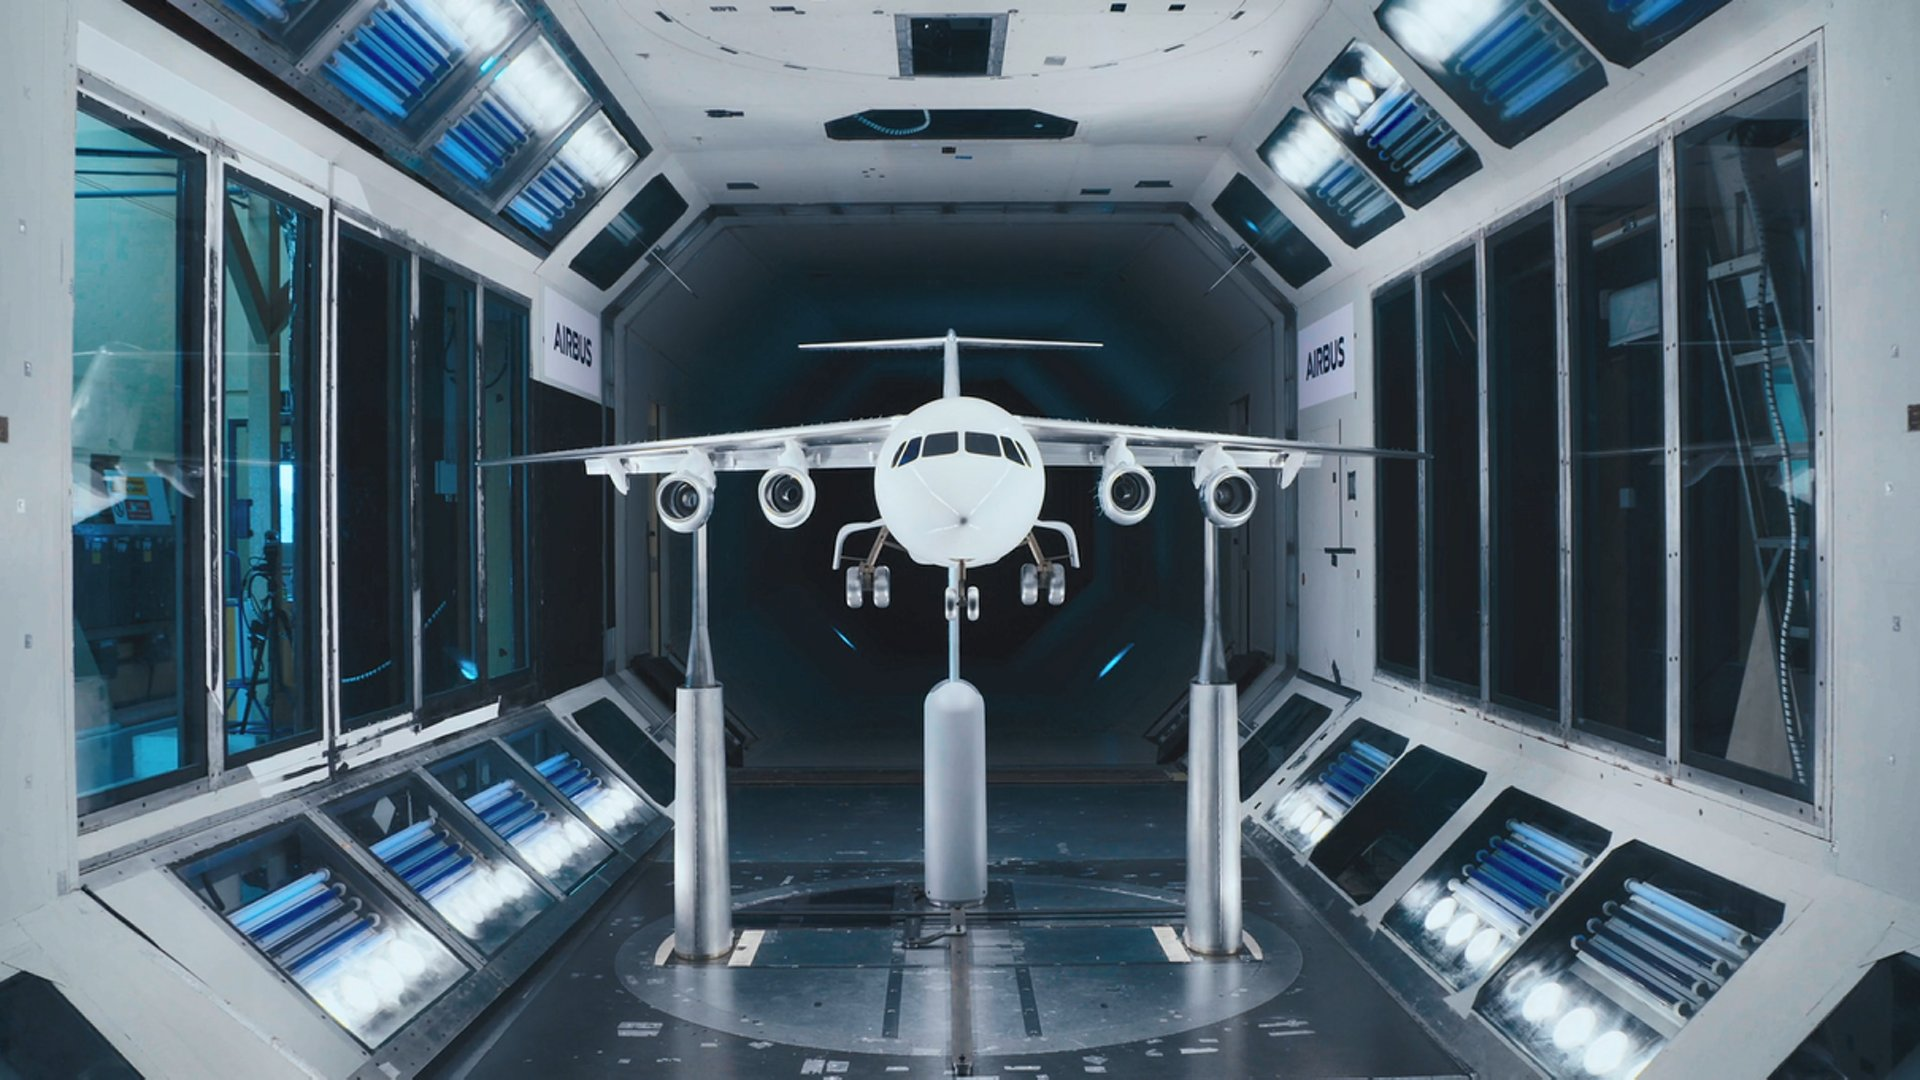 The wind tunnel testing for the E-Fan X was carried out at Airbus' wind tunnel centre in Filton, UK. All Airbus aircraft undergo wind tunnel testing at this centre.